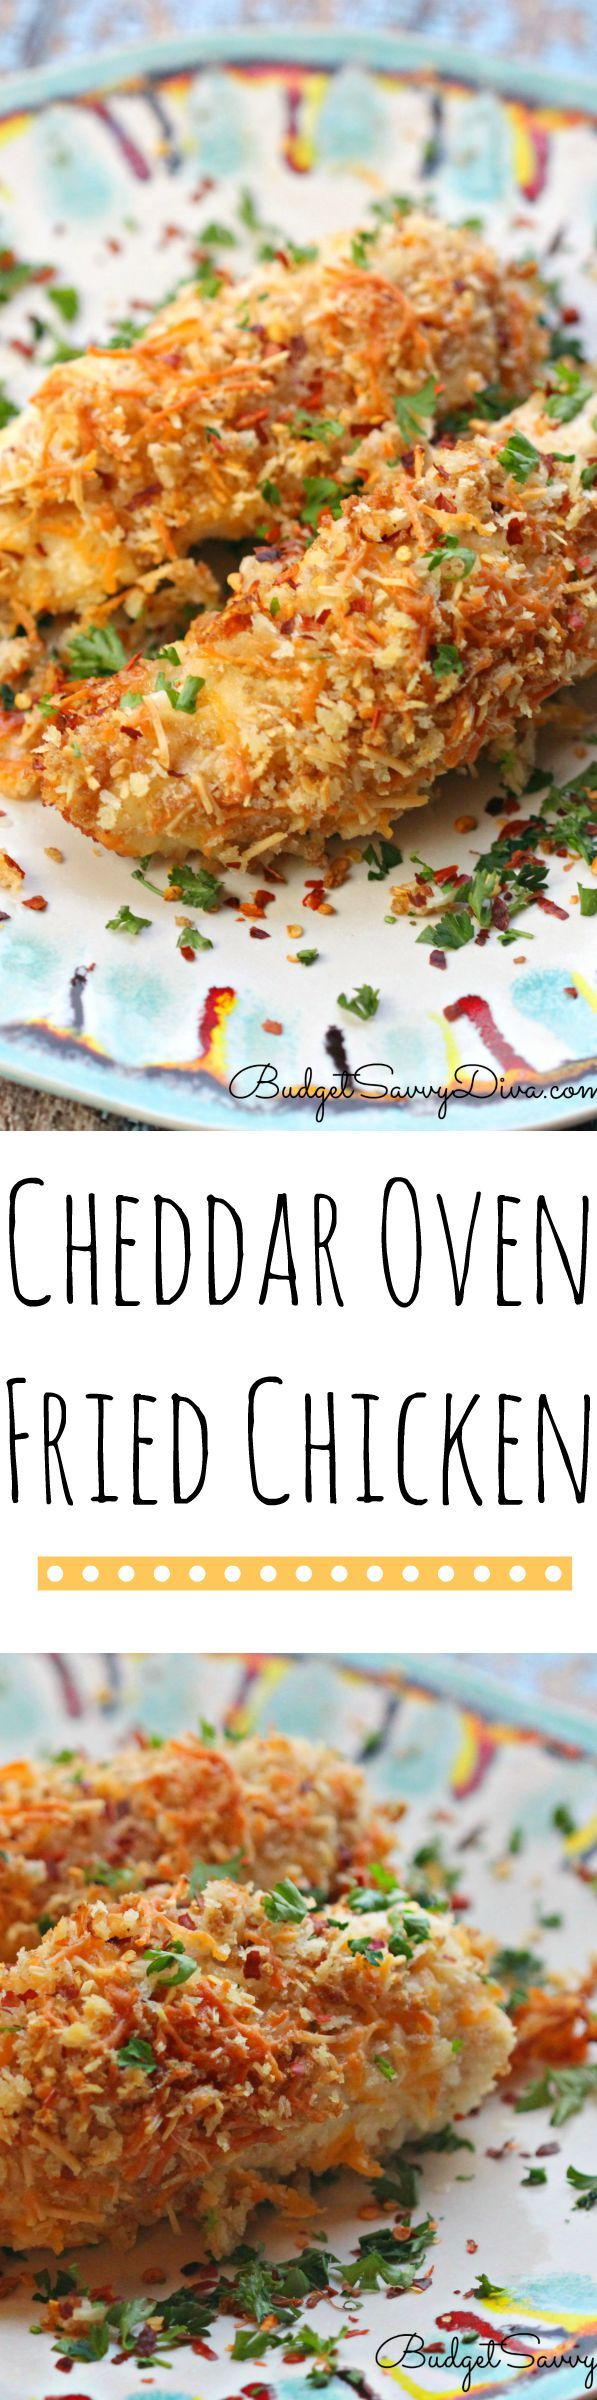 Cheddar Oven Fried Chicken Recipe - Easy weekday recipe. Works great with boneless chicken. The chicken is super crispy even though it is cooked in the oven